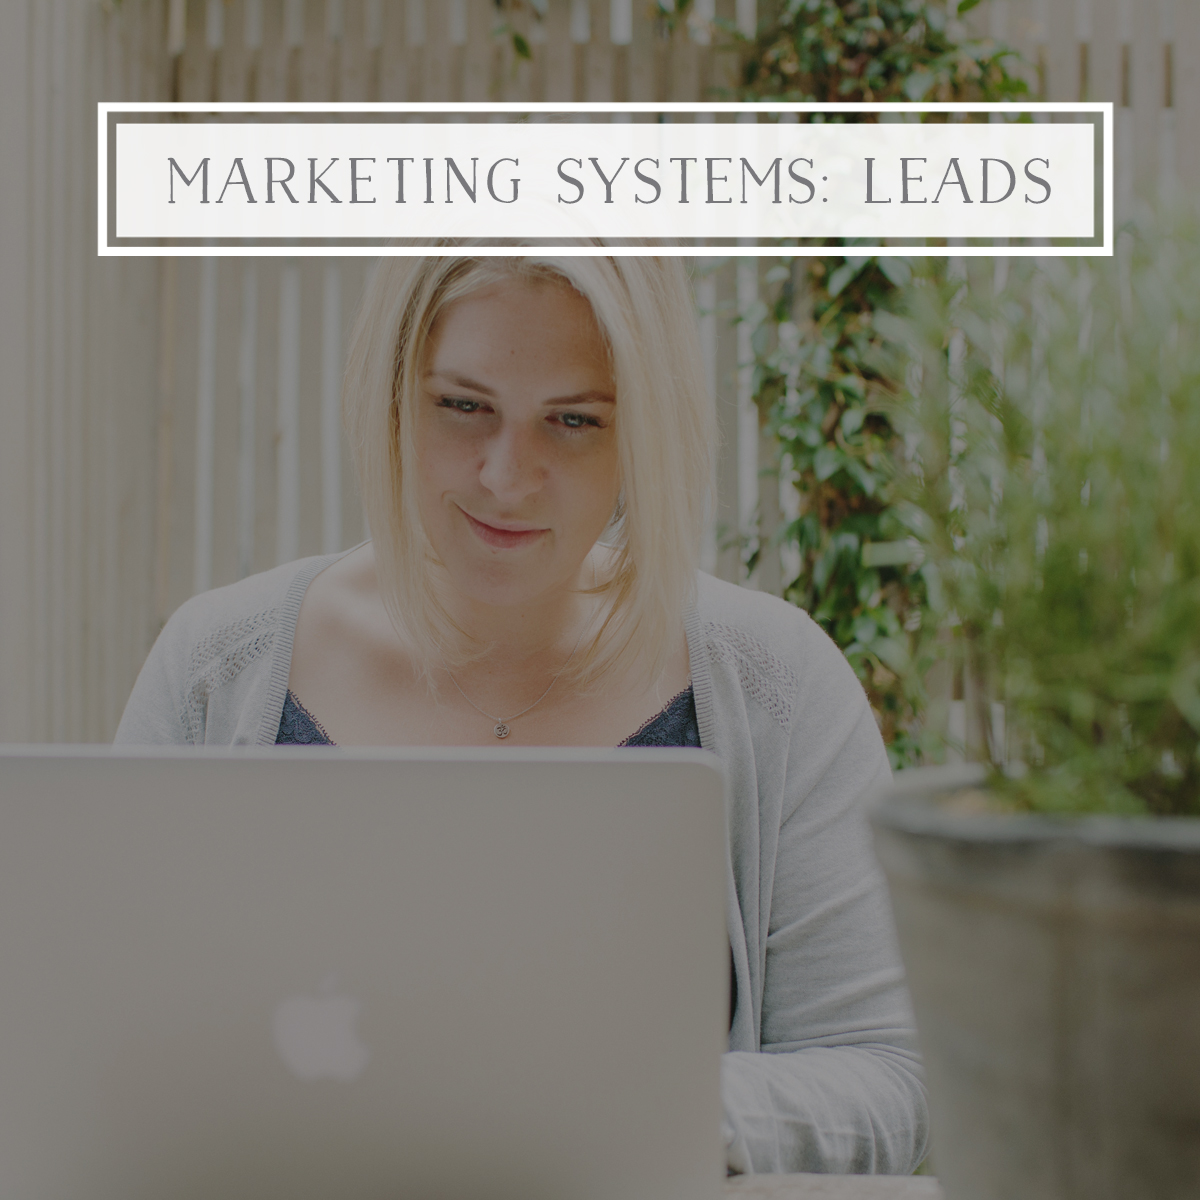 Marketing System: Leads